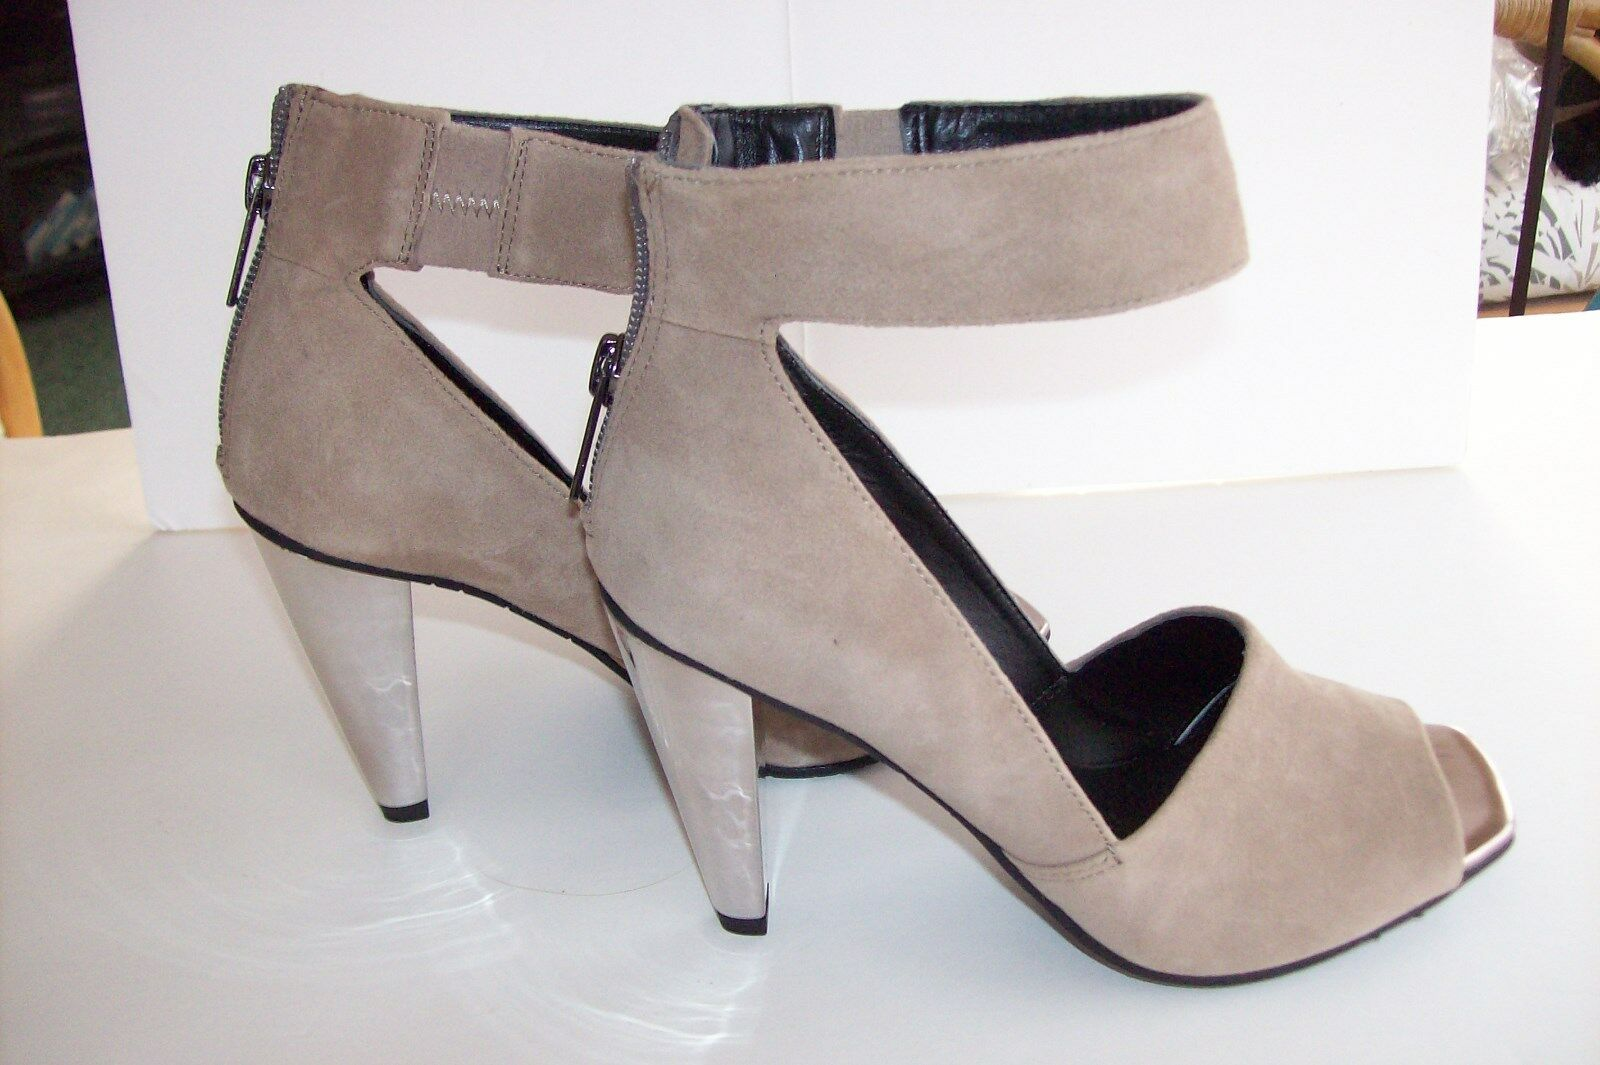 KENNETH COLE REACTION  PEEP RISE TAUPE HIGH HEEL SHOE SHOE HEEL 6 M c2d150